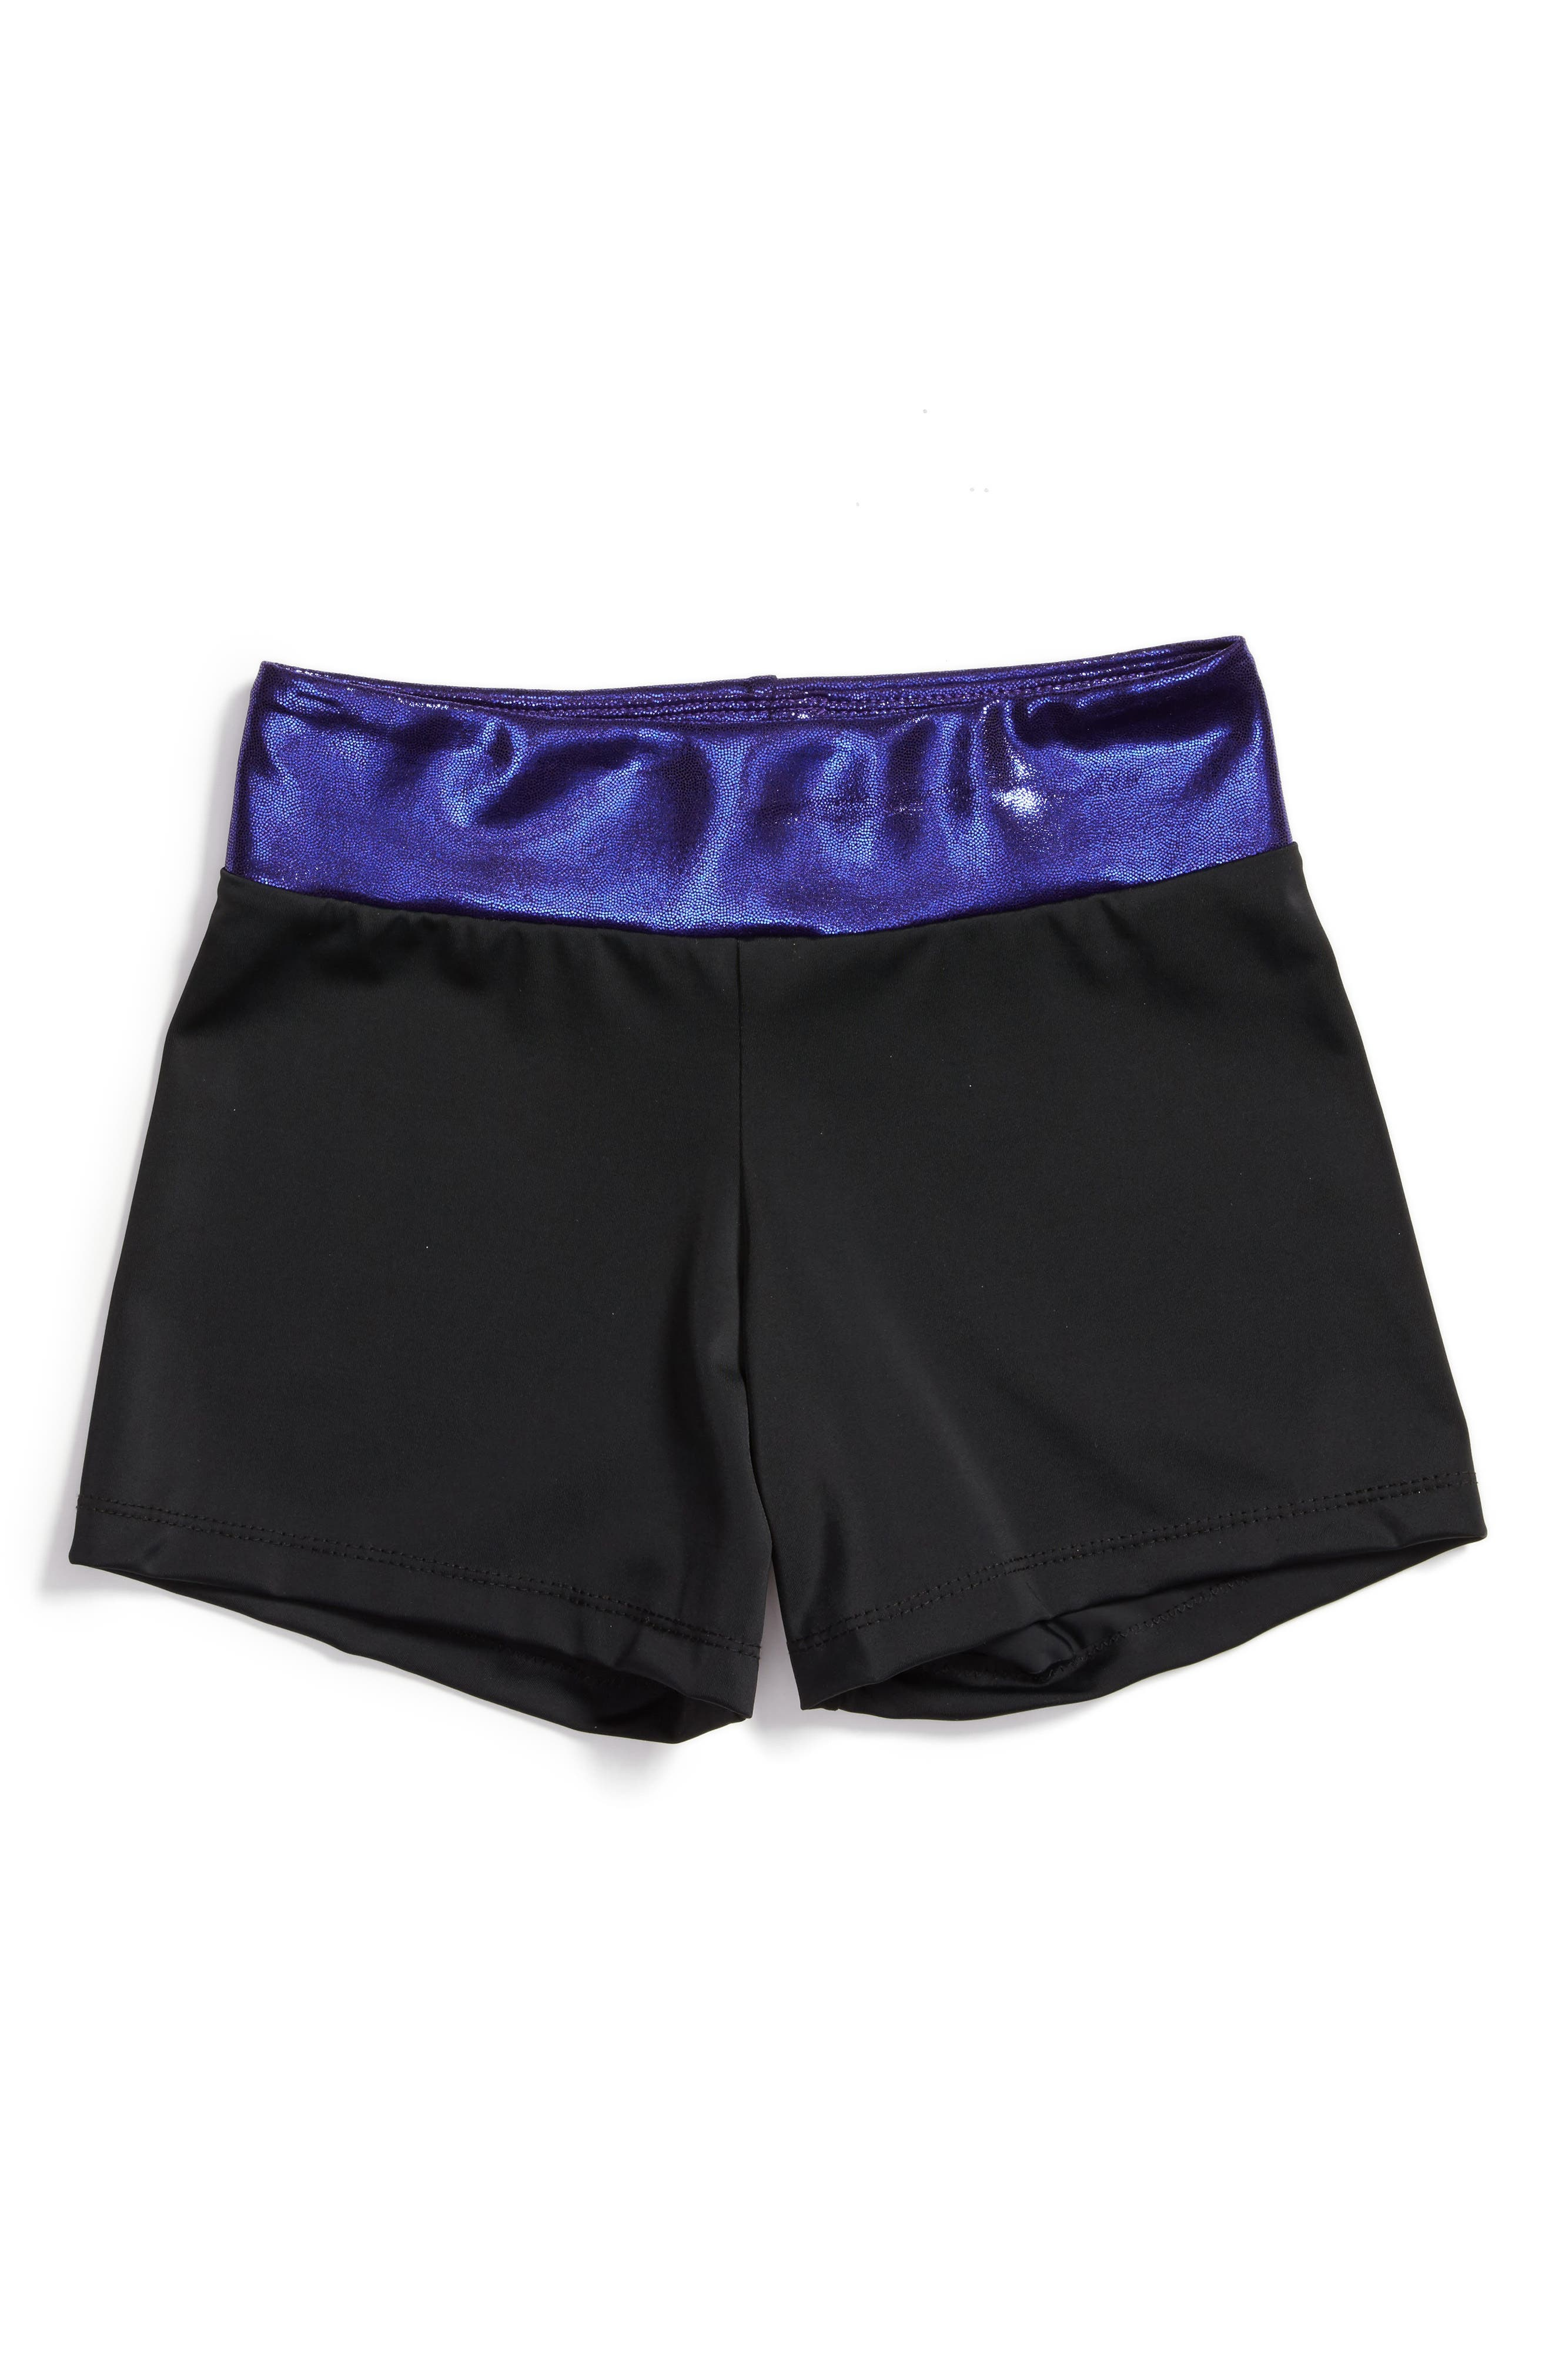 Space Girl Stretch Shorts,                         Main,                         color, 001